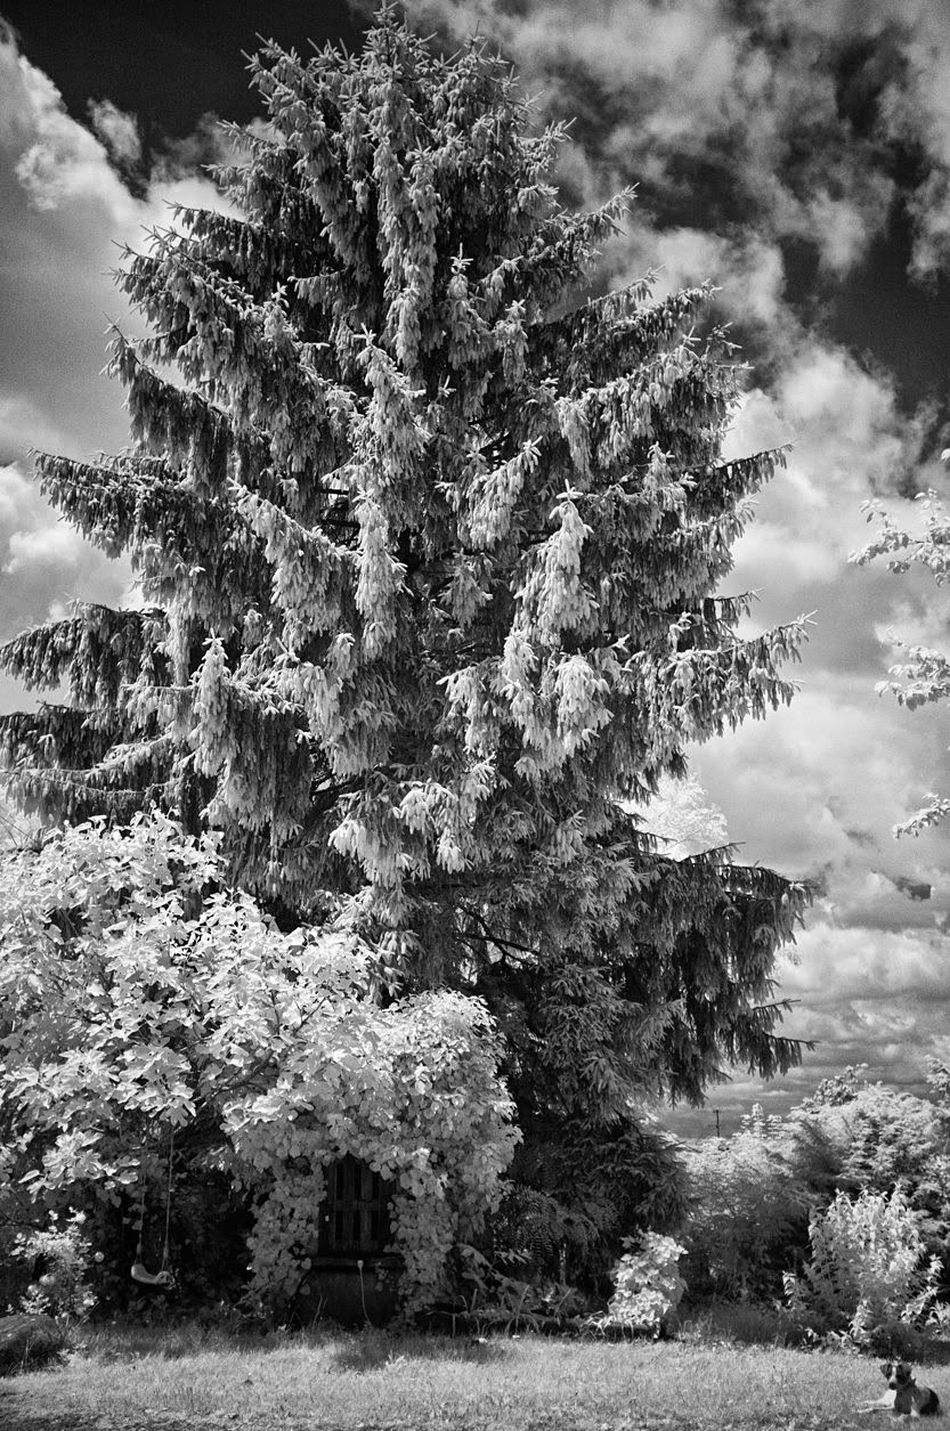 Como Lake Como Dog Infrared Infrared Photography Blackandwhite Black And White Photography Infrared Black And White Tree Tranquility Countryside Italy